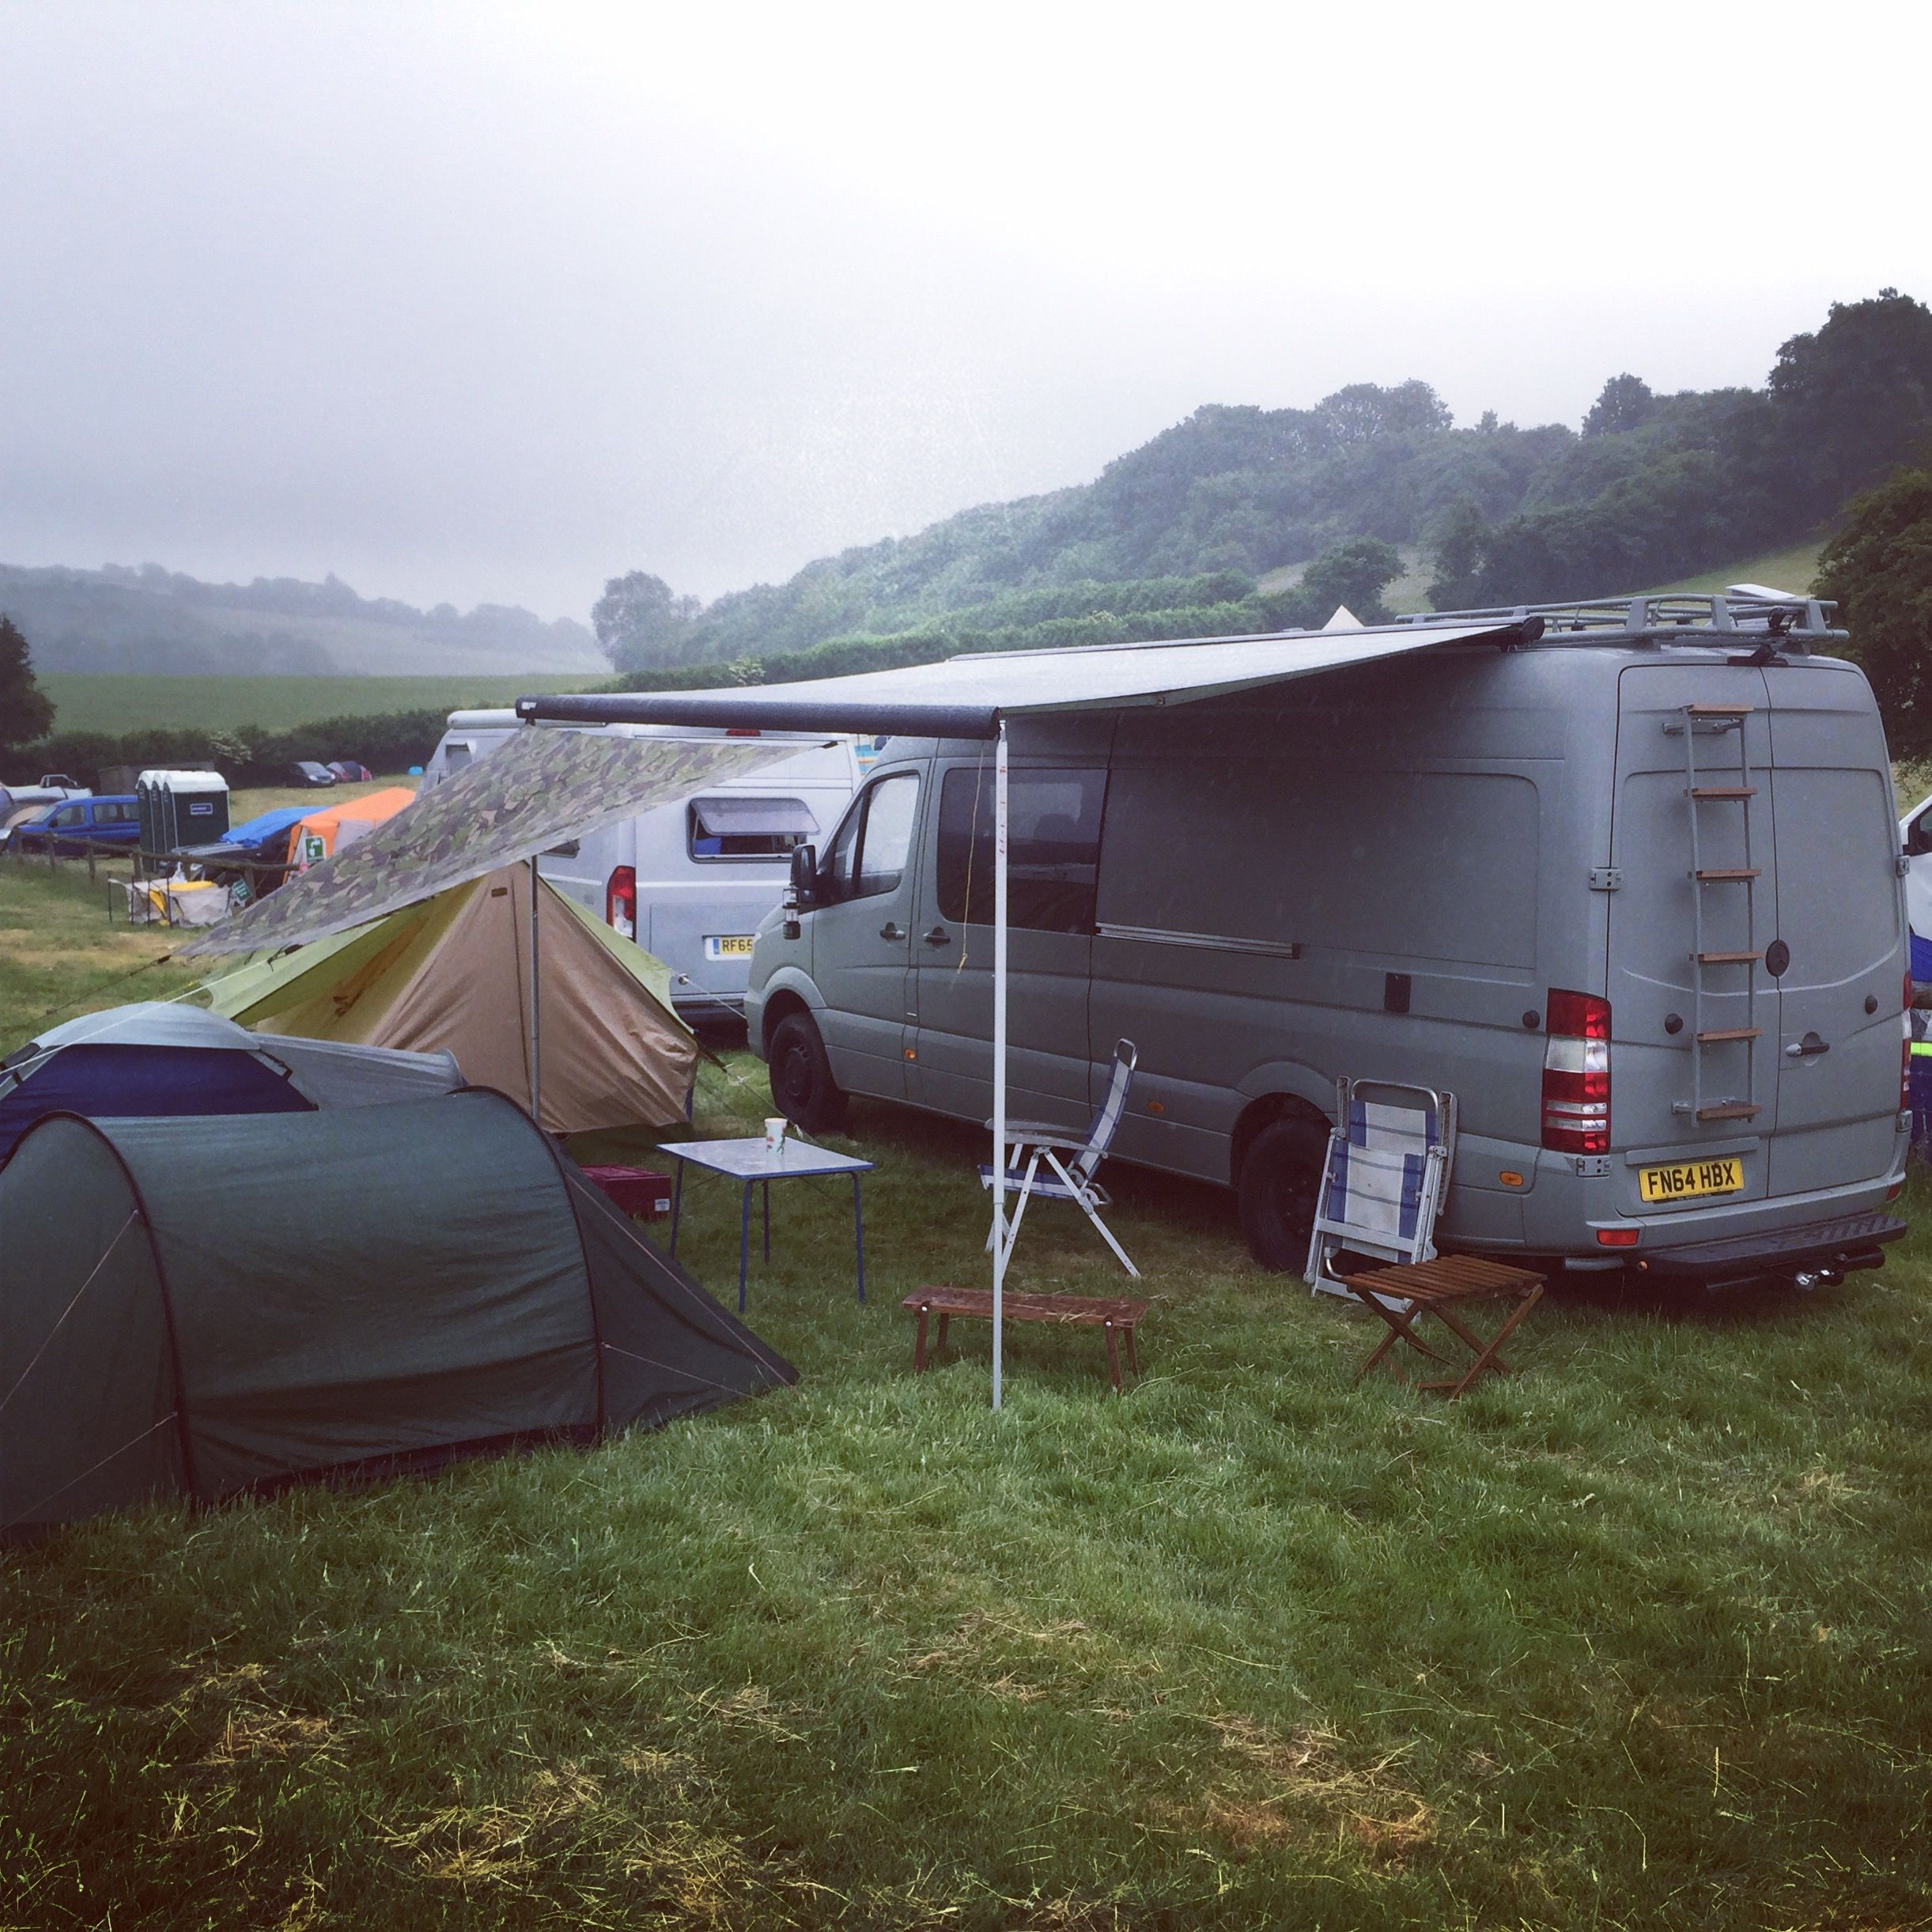 when not mercedes vw camper cooker down caddy table awnings pin is used solar awning van on fold sprinter stands